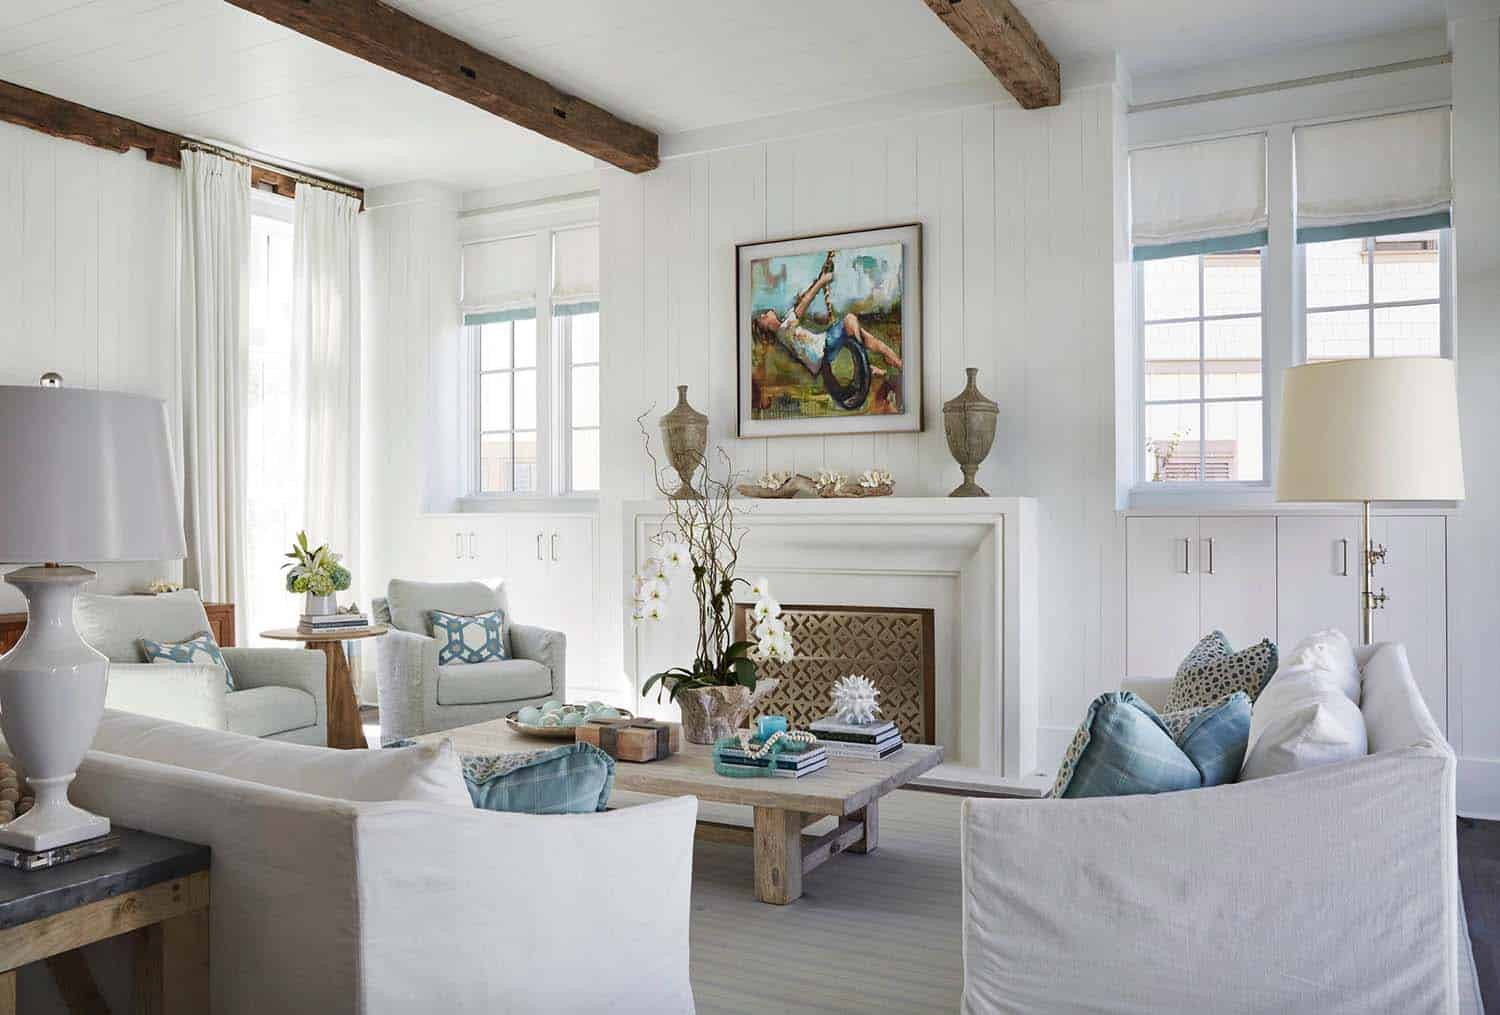 Inviting Beach House-TS Adams Studio-12-1 Kindesign